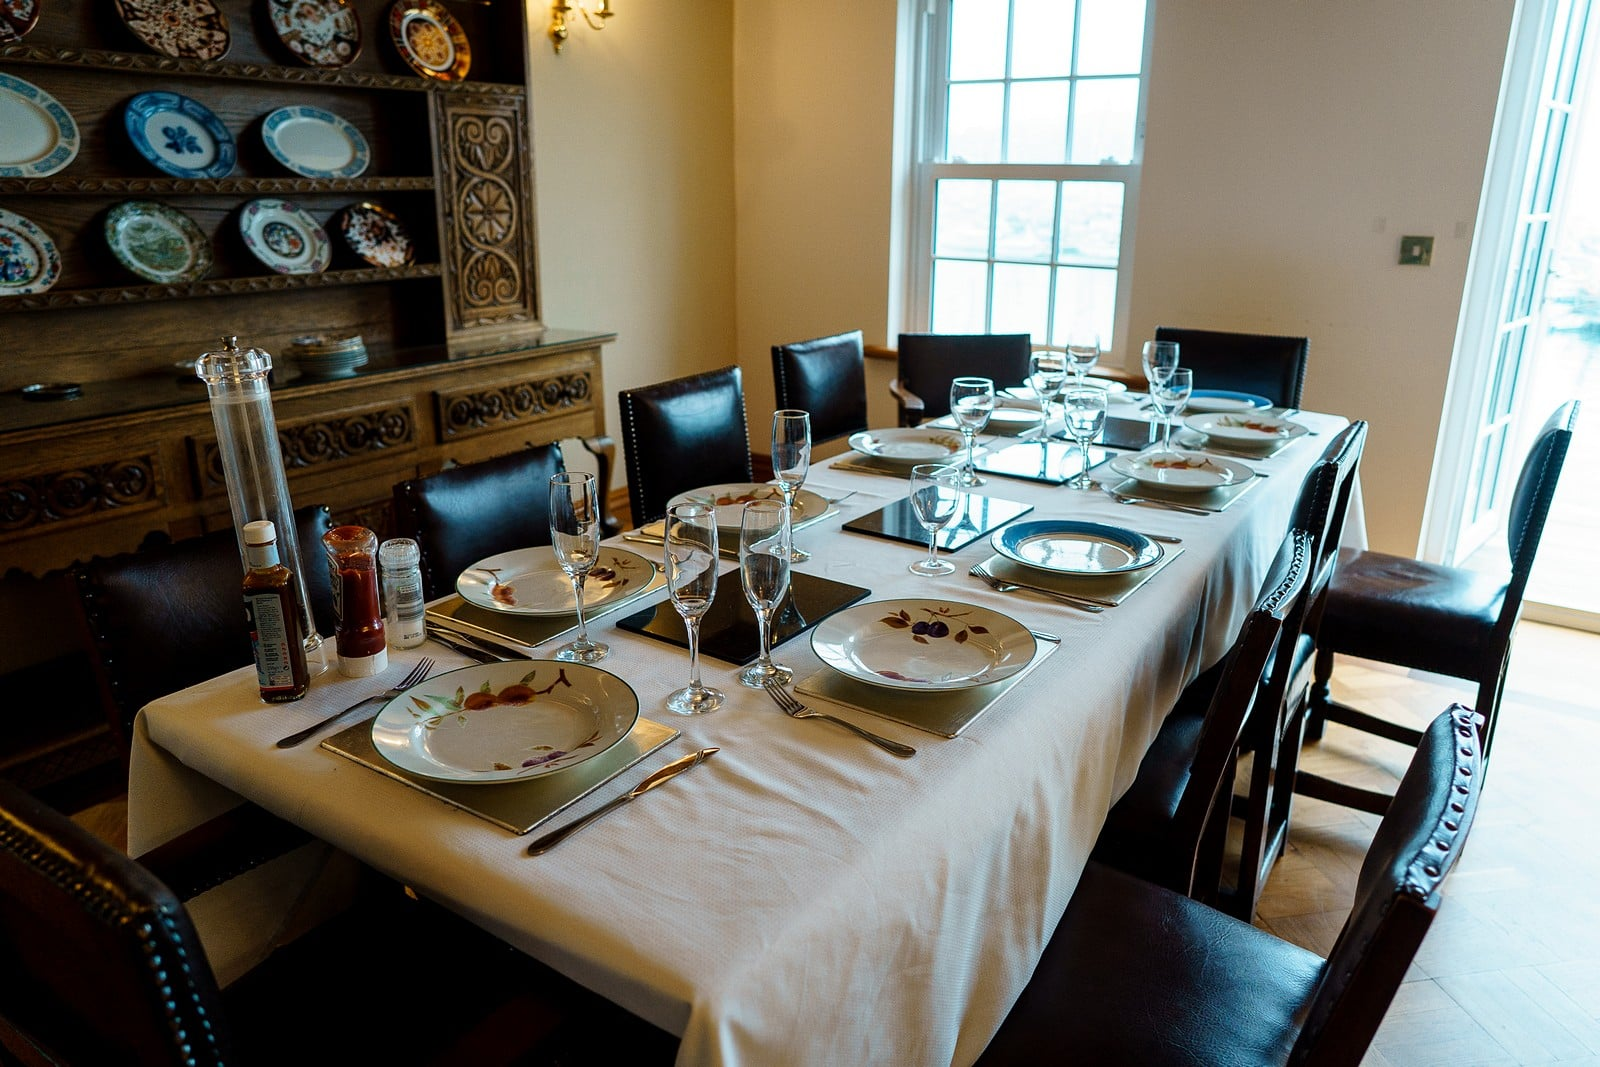 Wedding guest accommodation in Falmouth